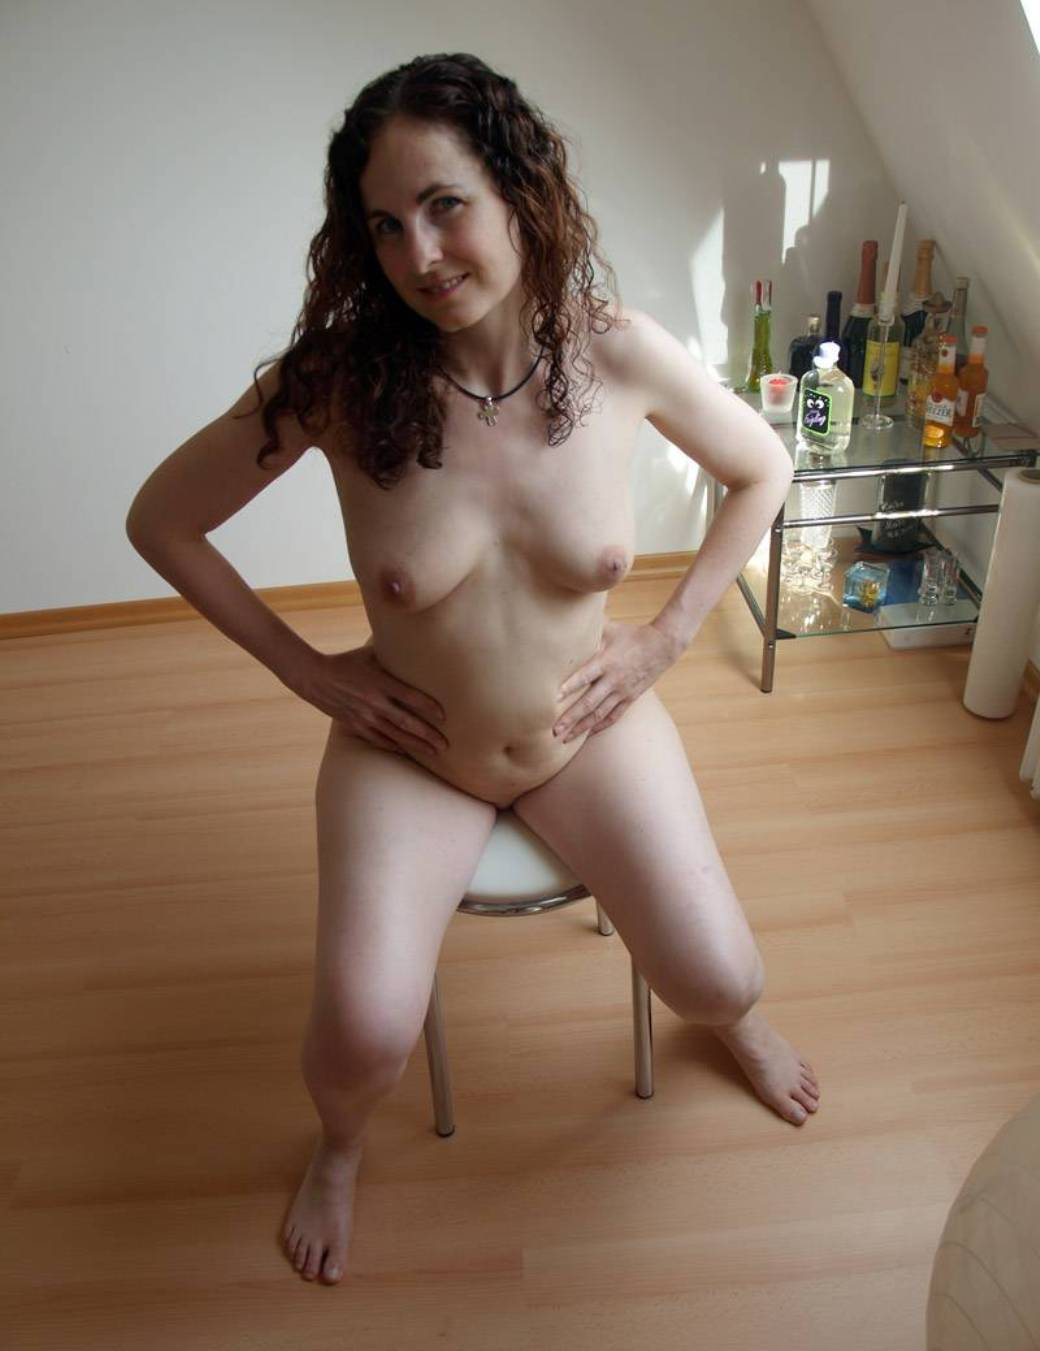 Naked pic of girl